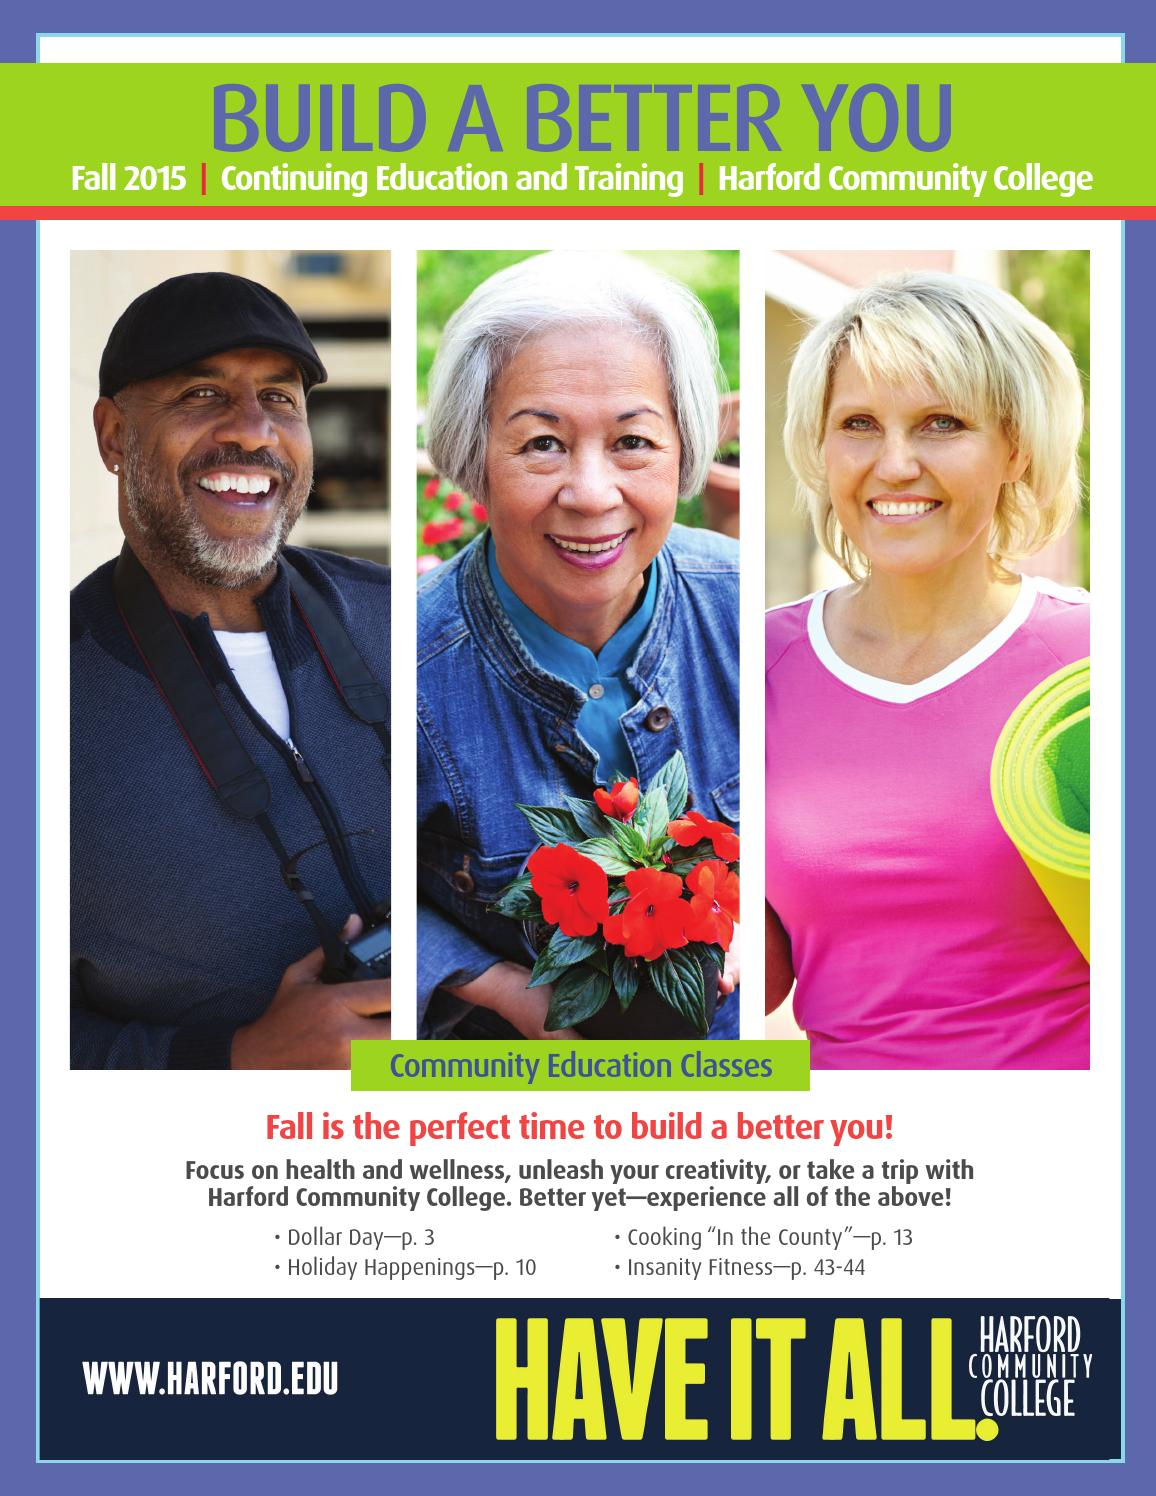 Build A Better You - Fall 2015 by Harford Community College - issuu